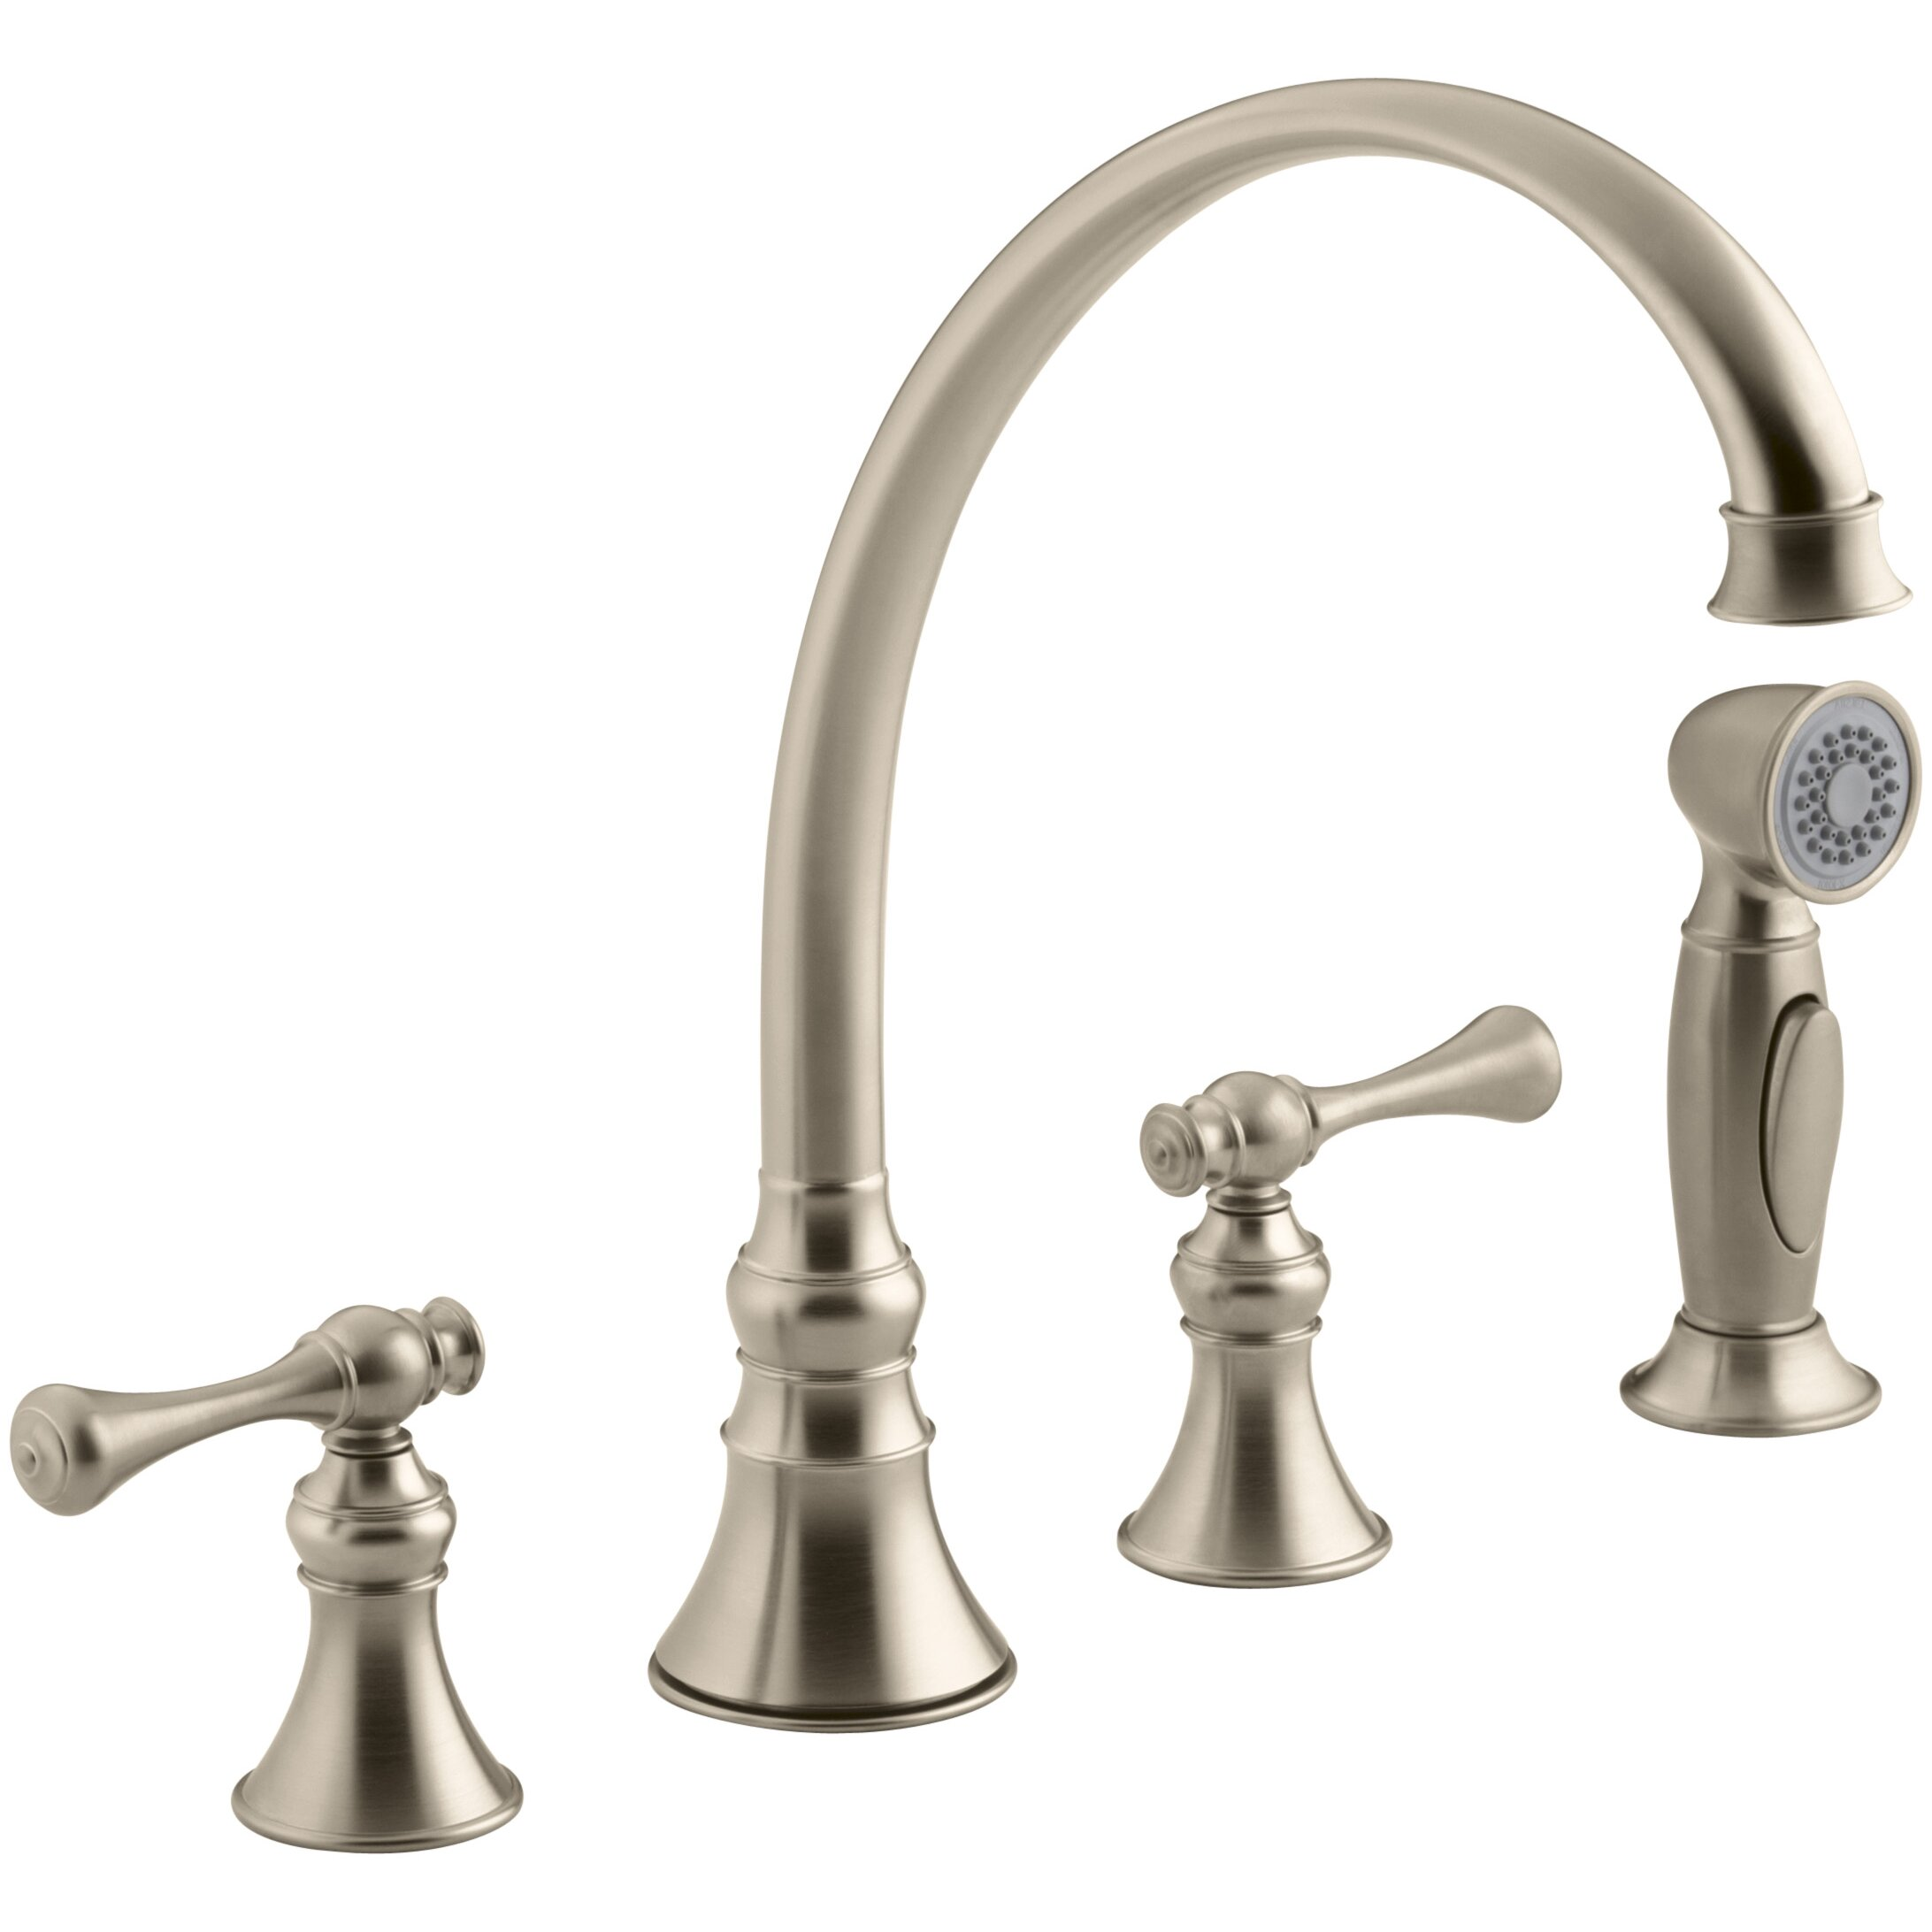 four hole kitchen faucet kohler revival 4 hole kitchen sink faucet with 9 3 16 quot spout matching finish sidespray and 1309